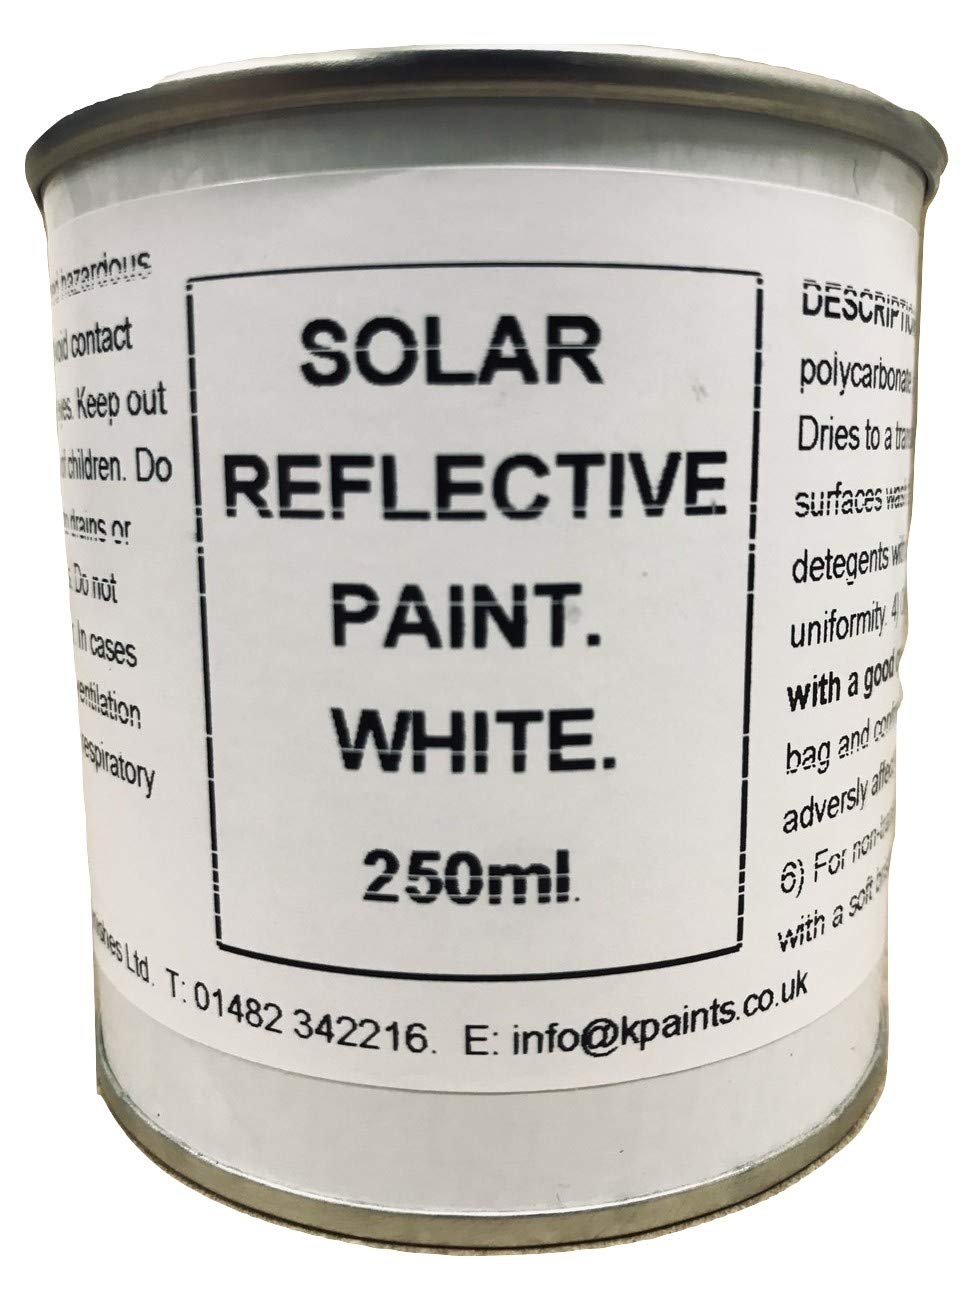 1 x 250ml White Solar Reflect Paint Polycarbonate Glass Conservatory Shading Greenhouse Fascinating Finishes Ltd